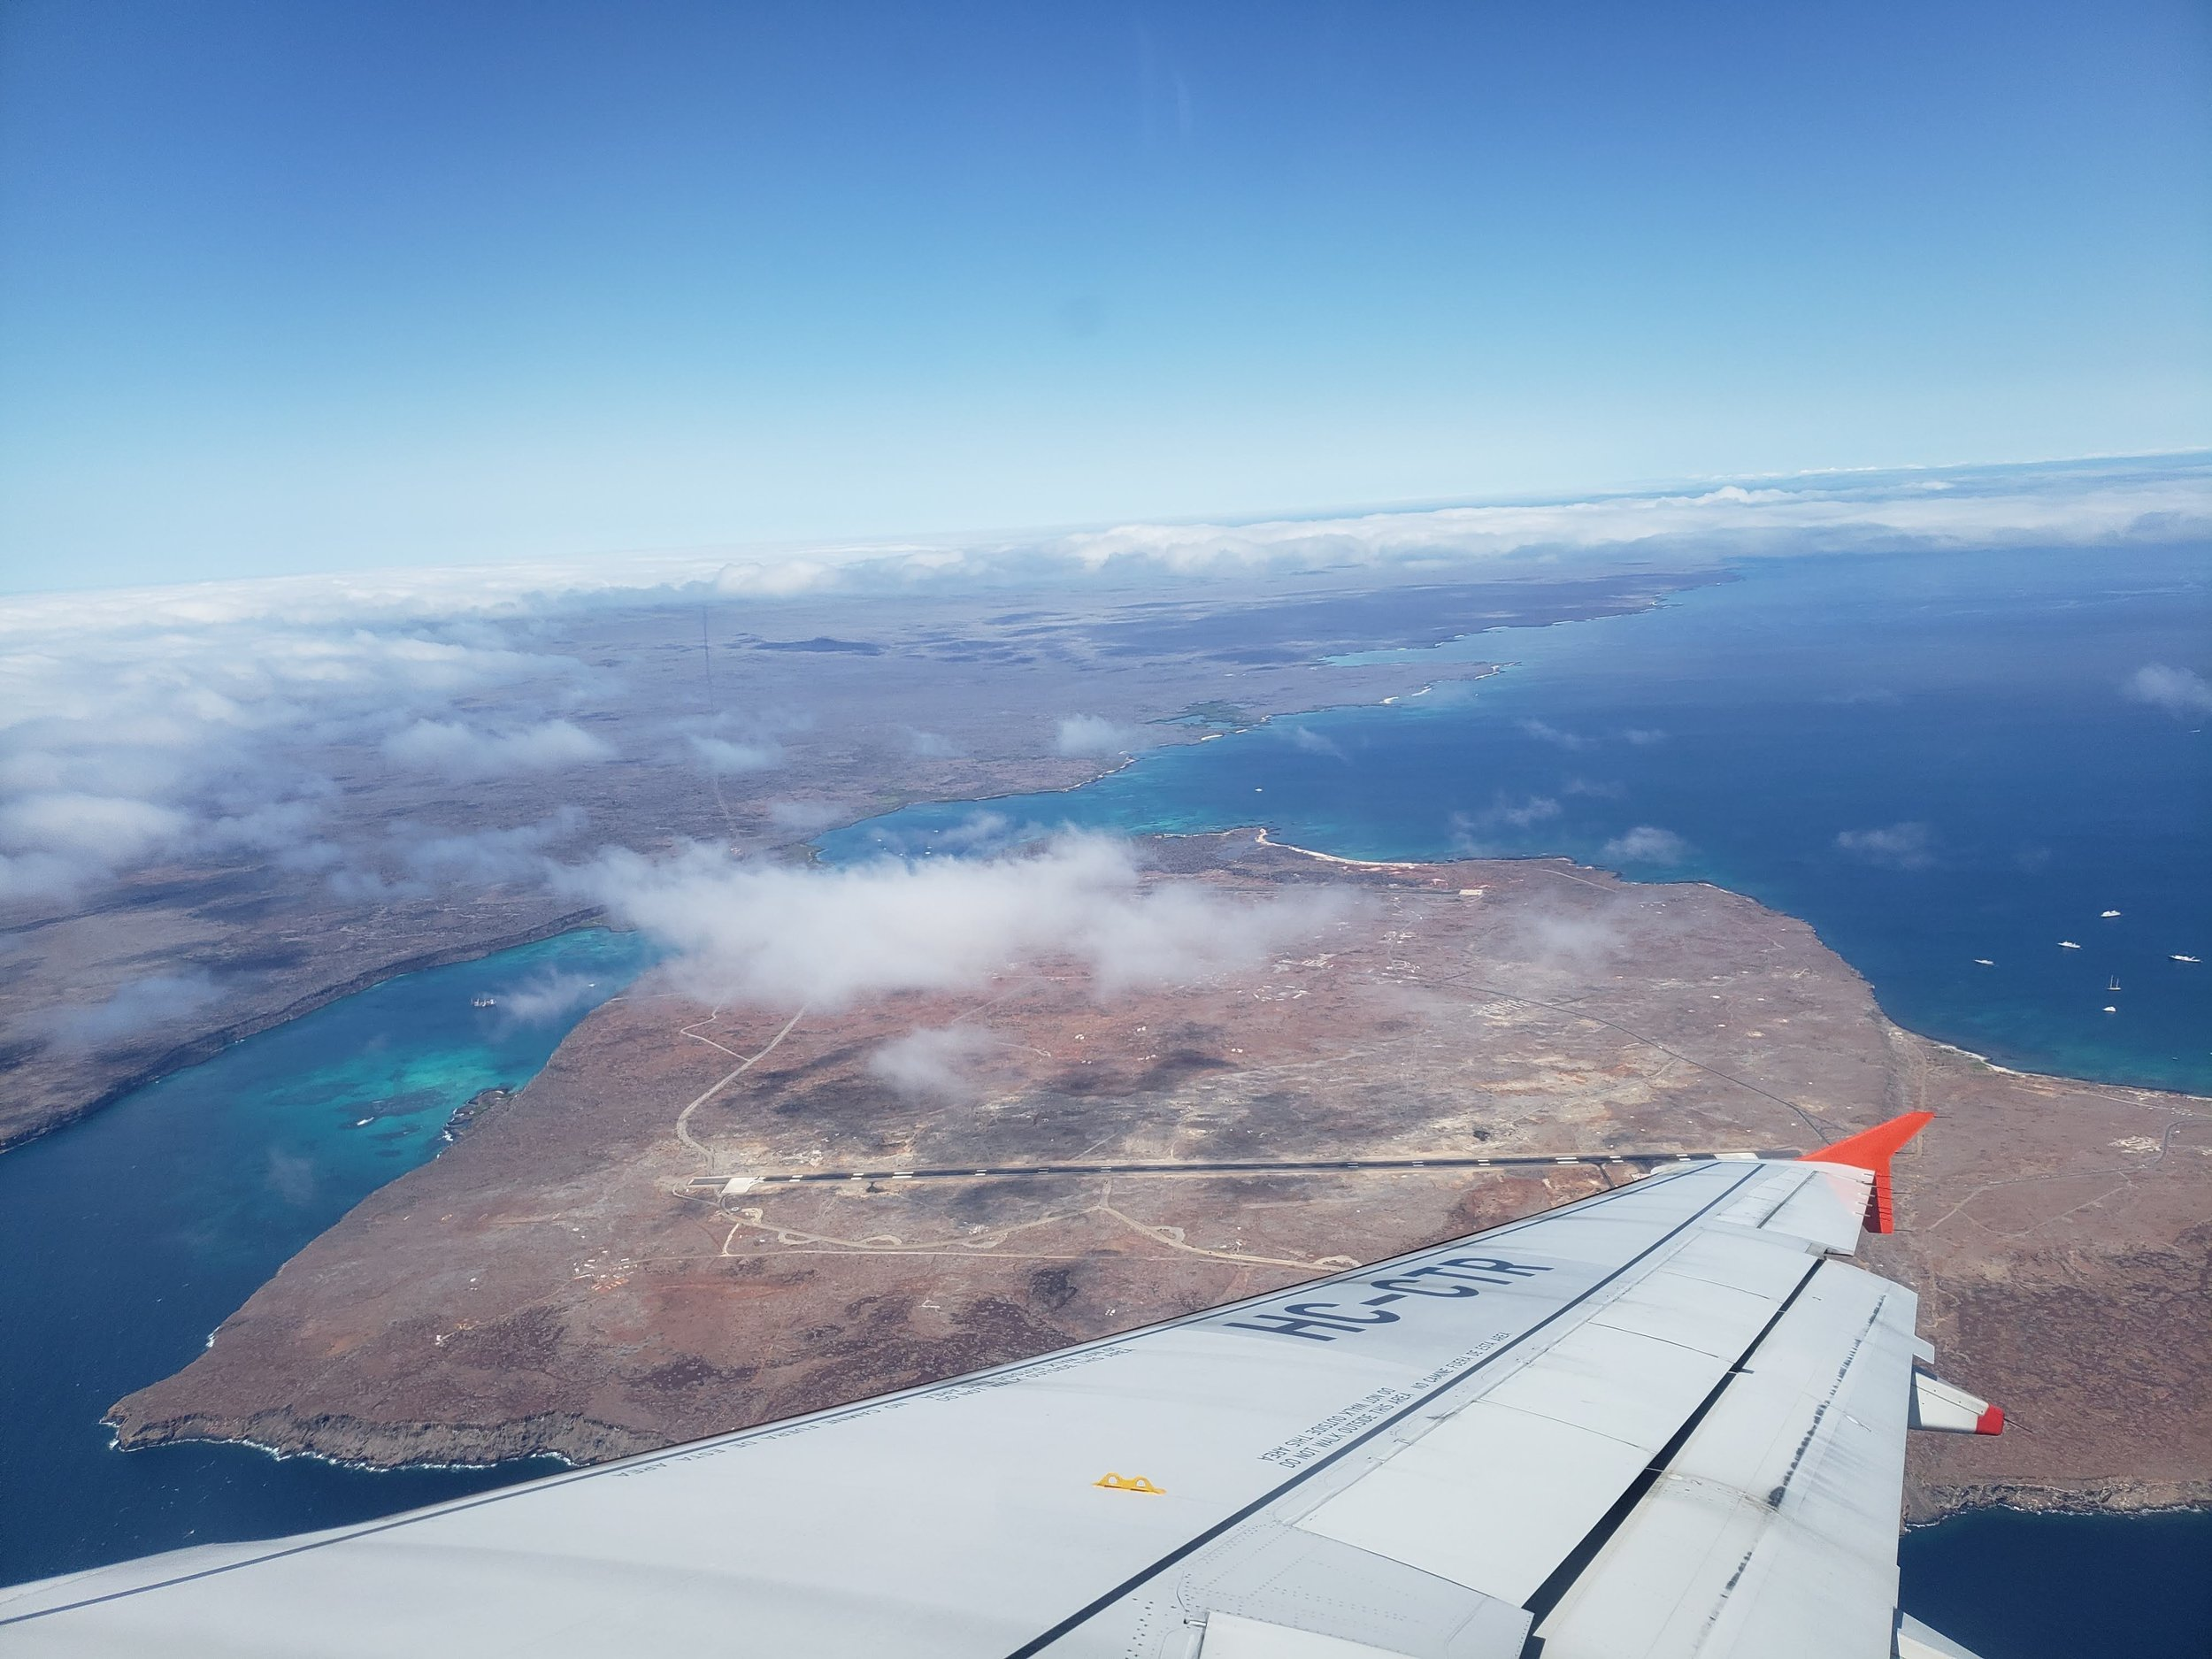 The view of Galapagos from the airplane.  Photo by Alison Travis